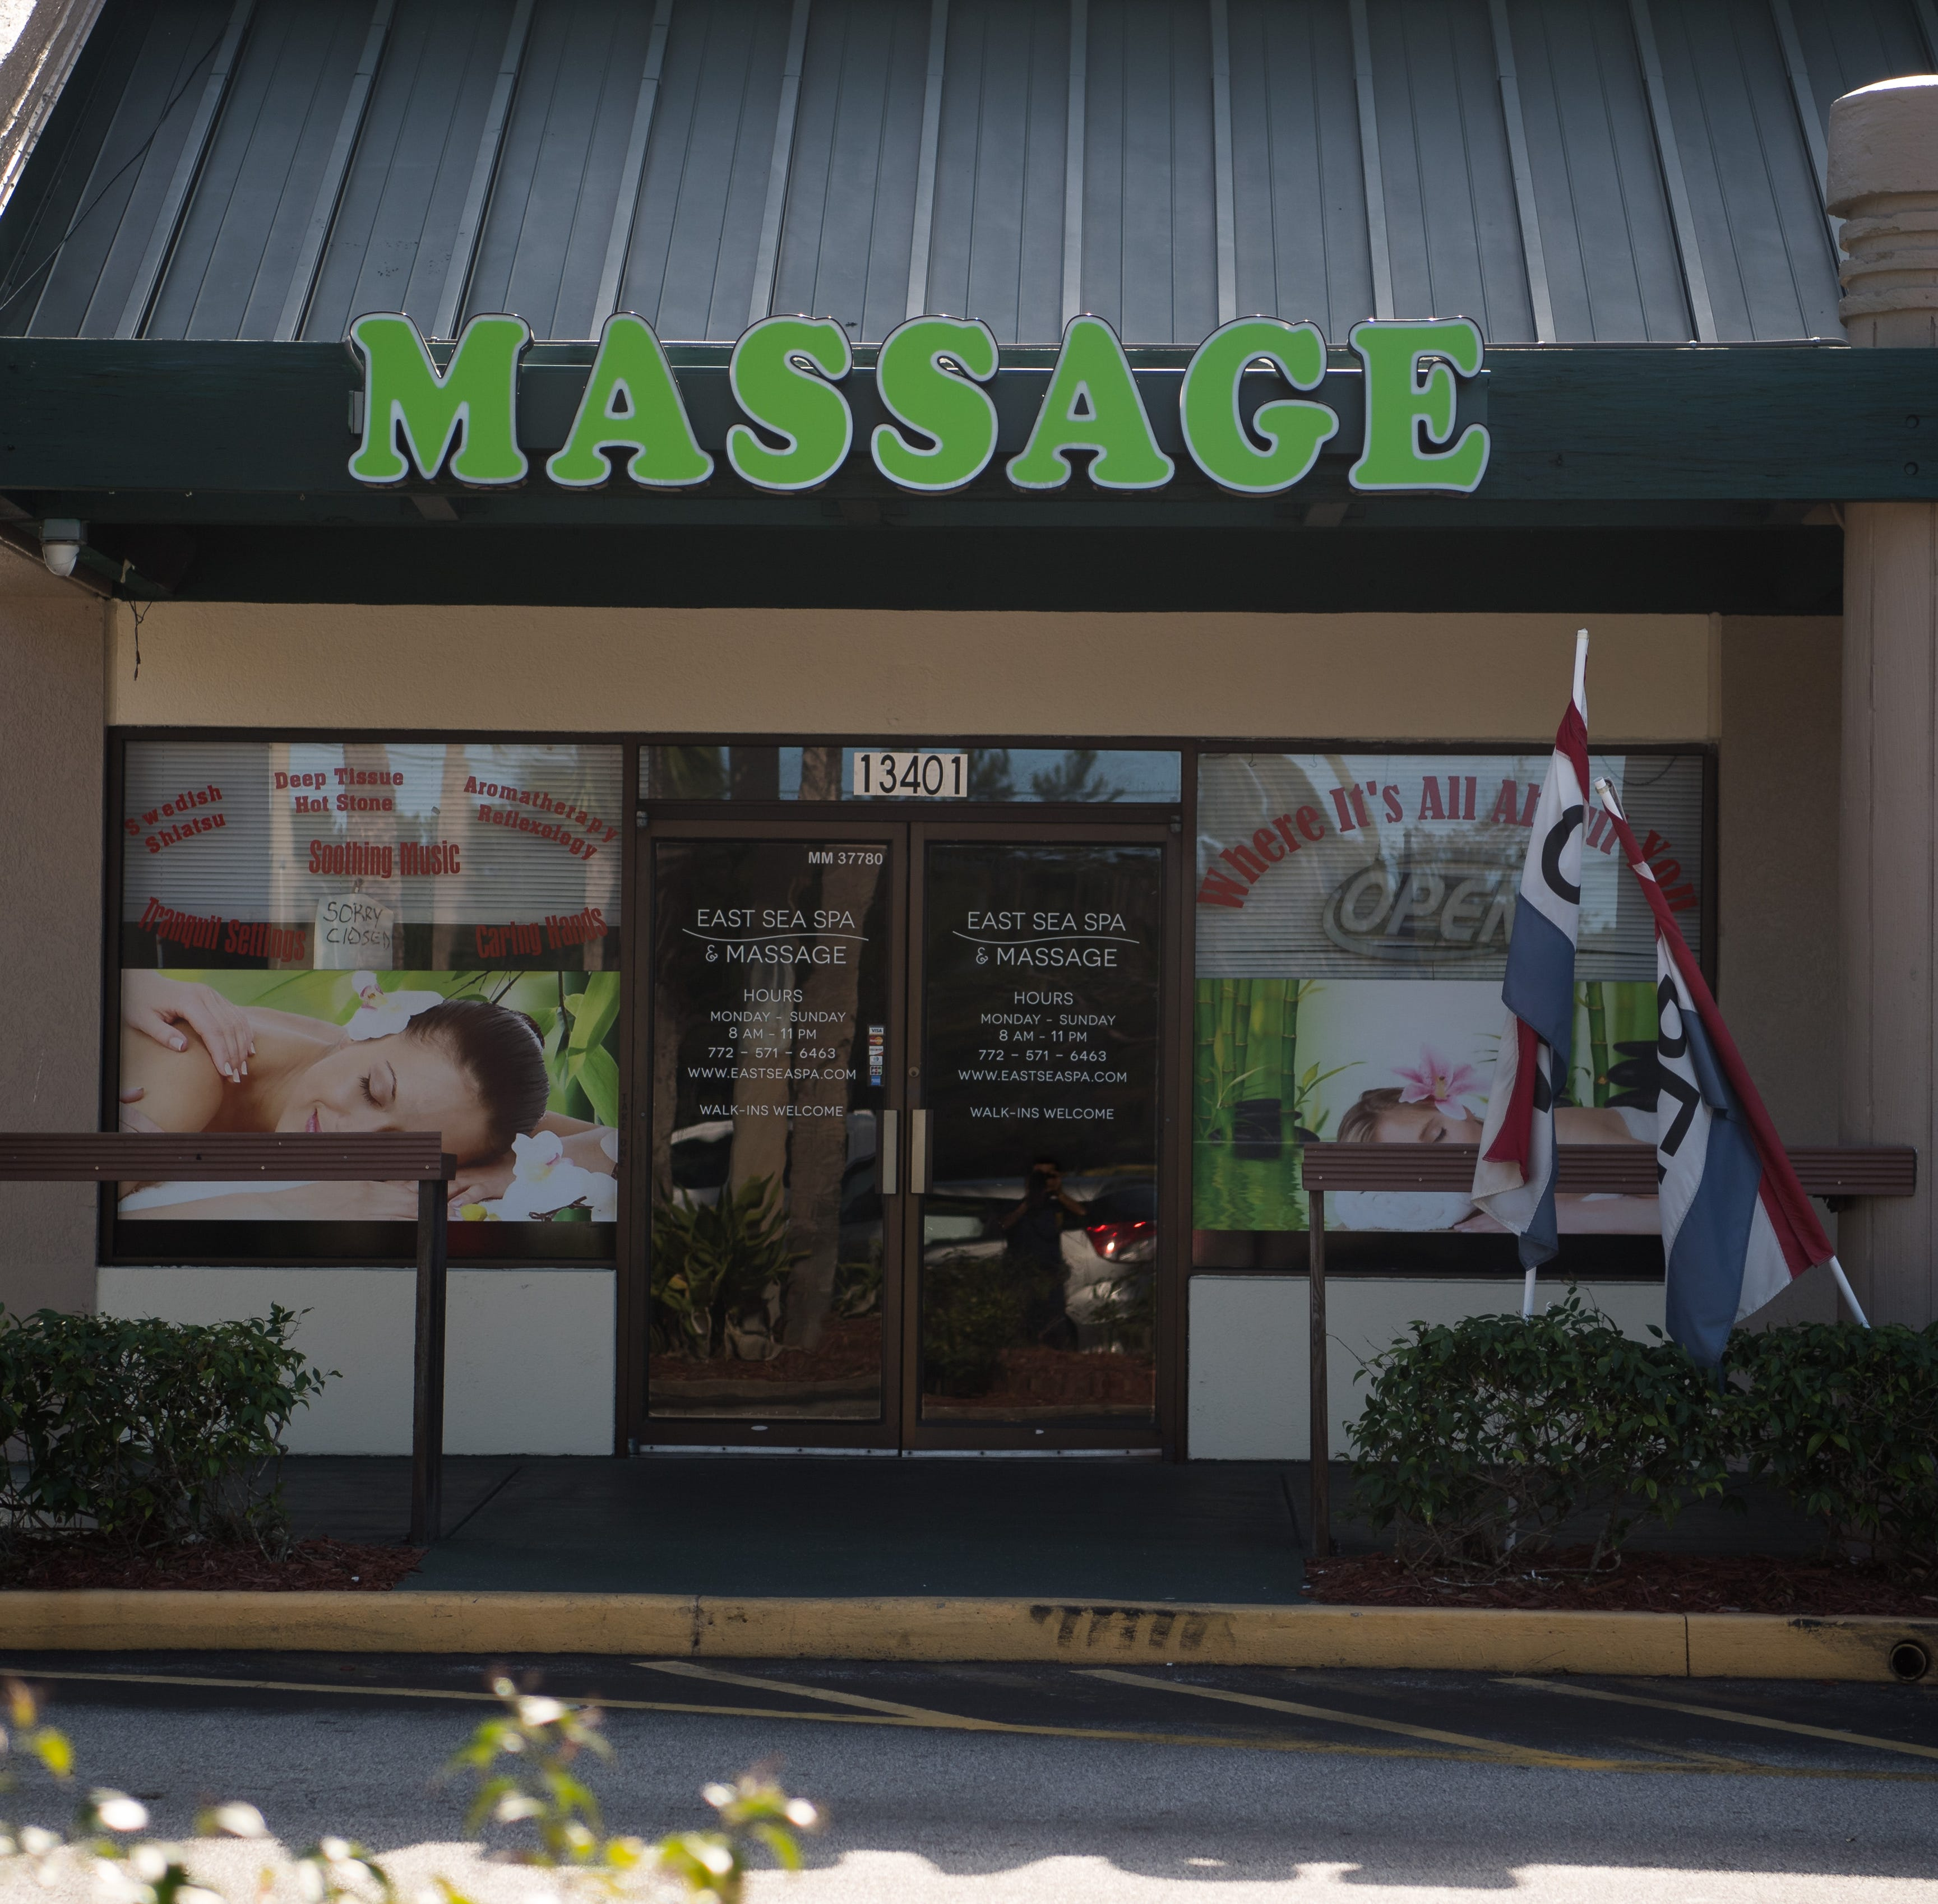 Indian River County judges rule video evidence cannot be used in sex spa cases